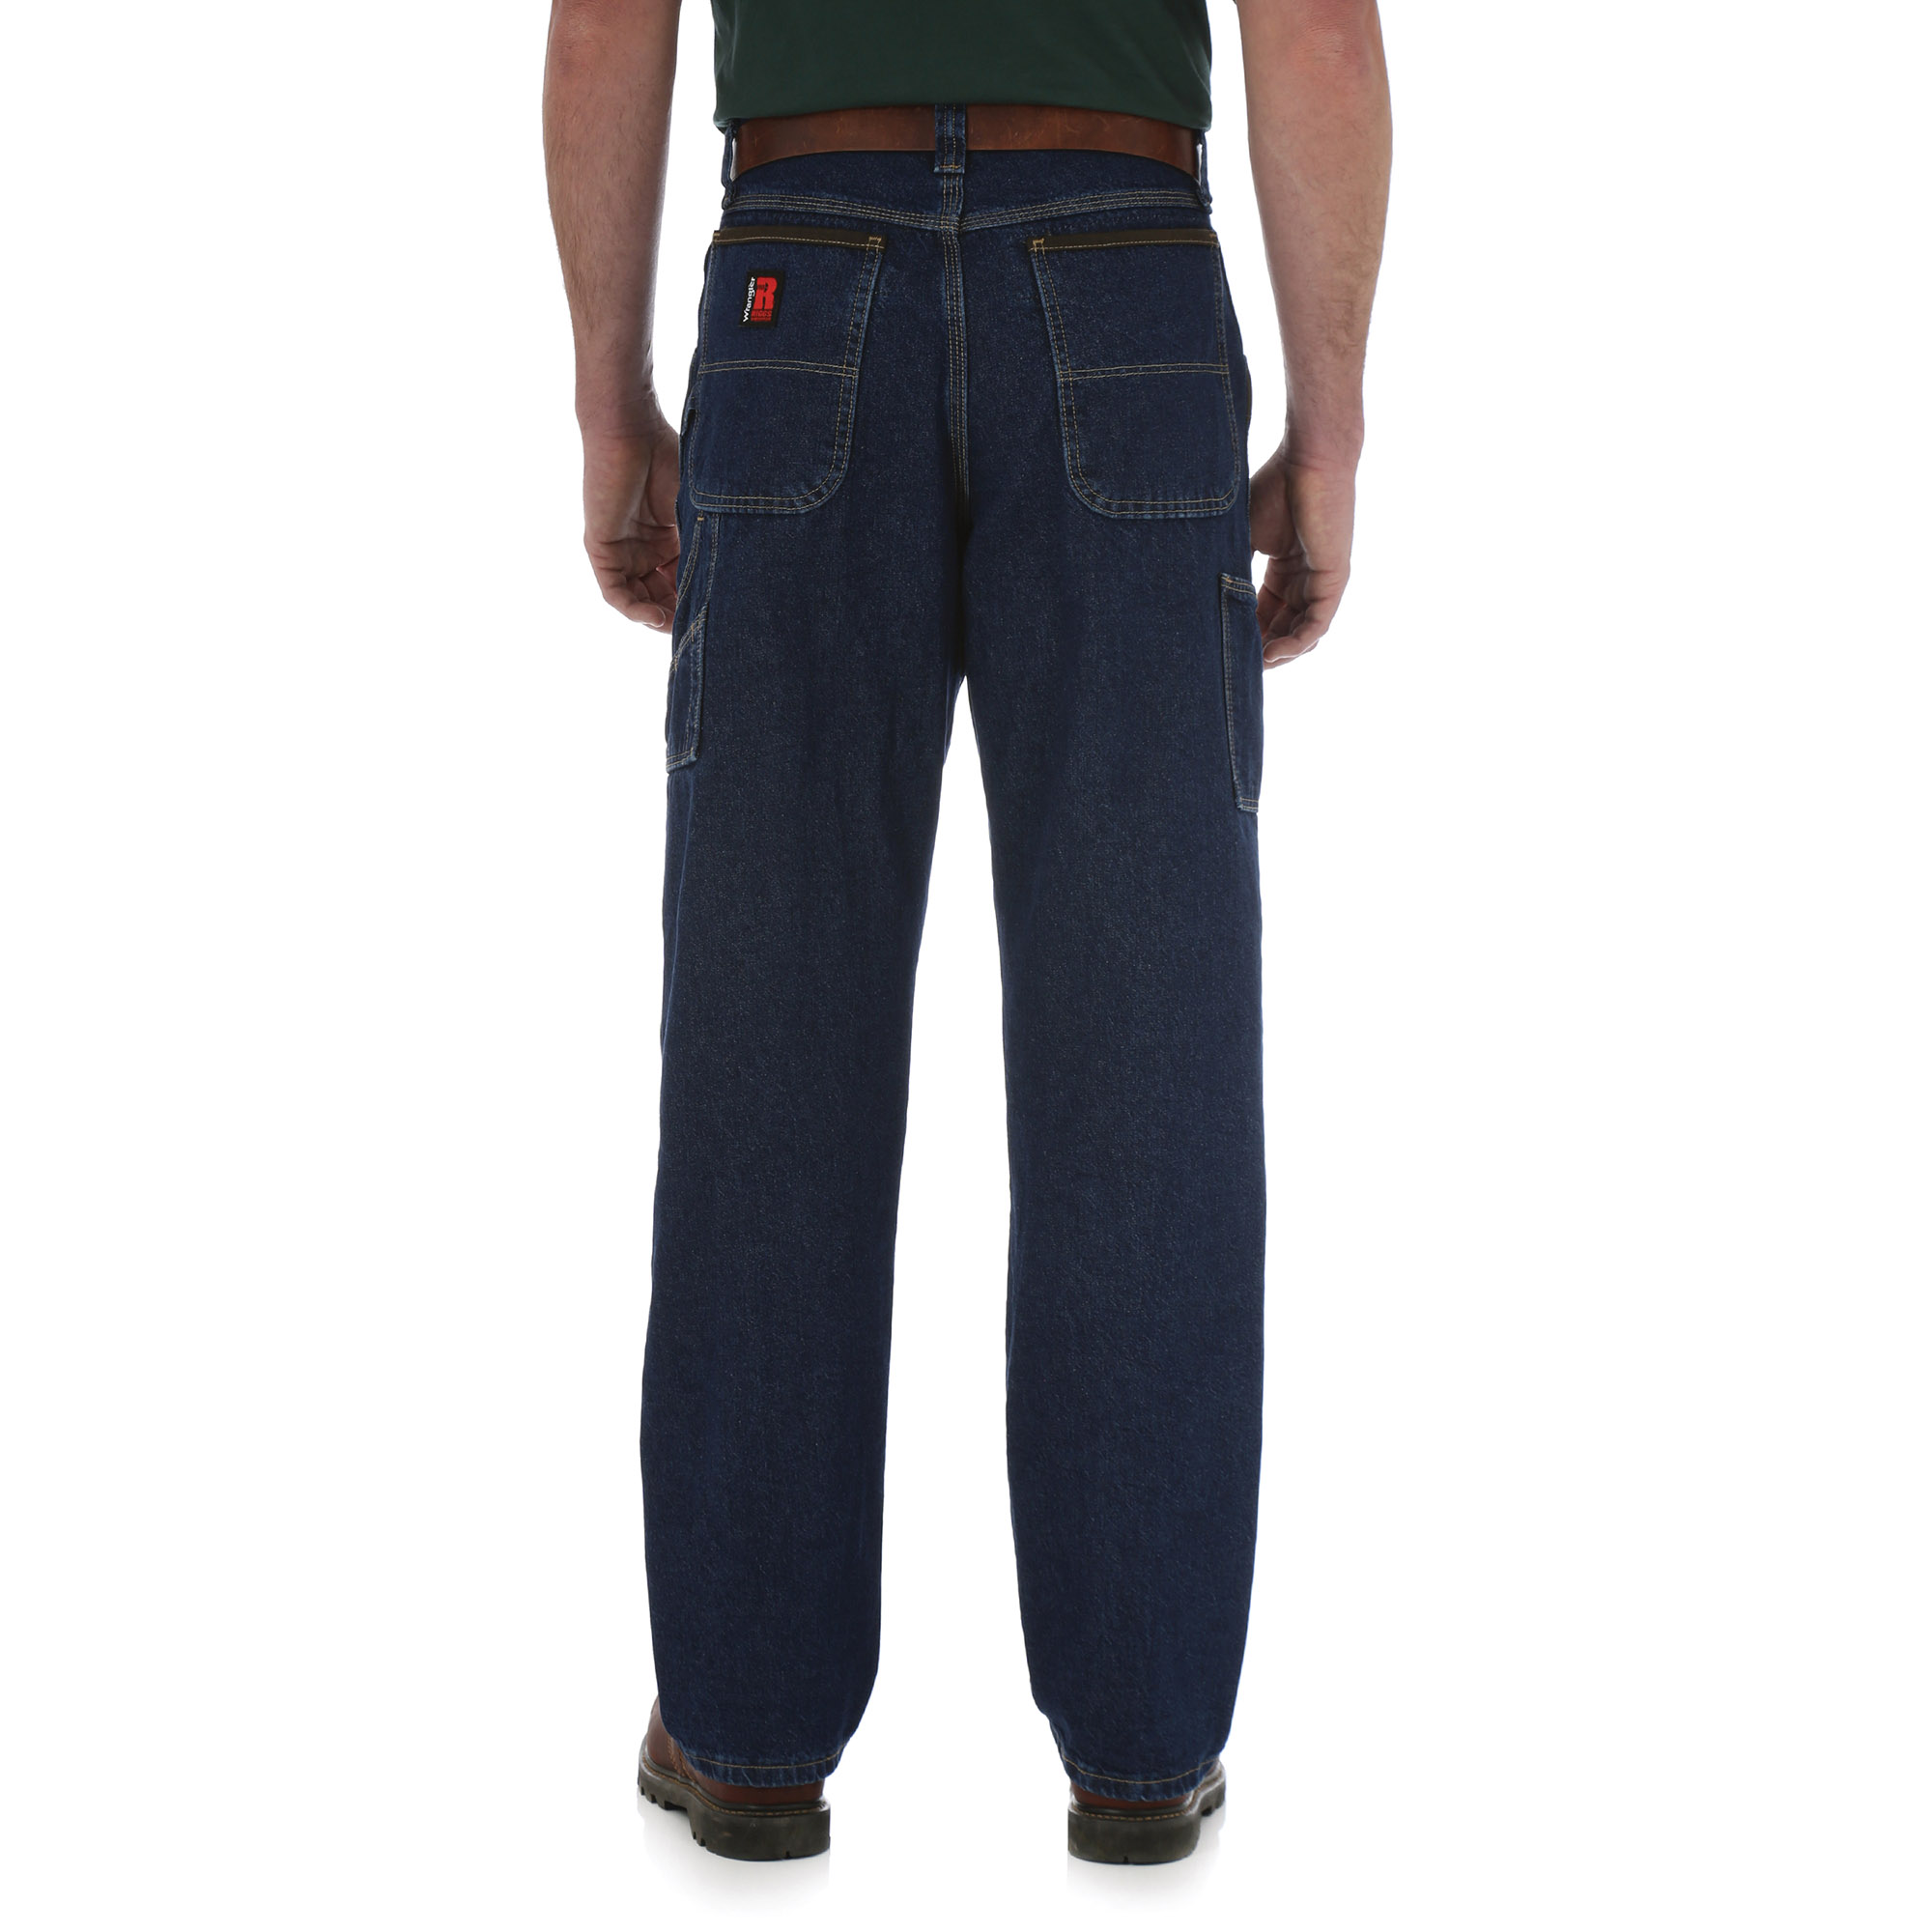 a5bf22fa Wrangler RIGGS 3W040AI Contractor Jeans - Relaxed Fit - Antique Indigo |  FullSource.com